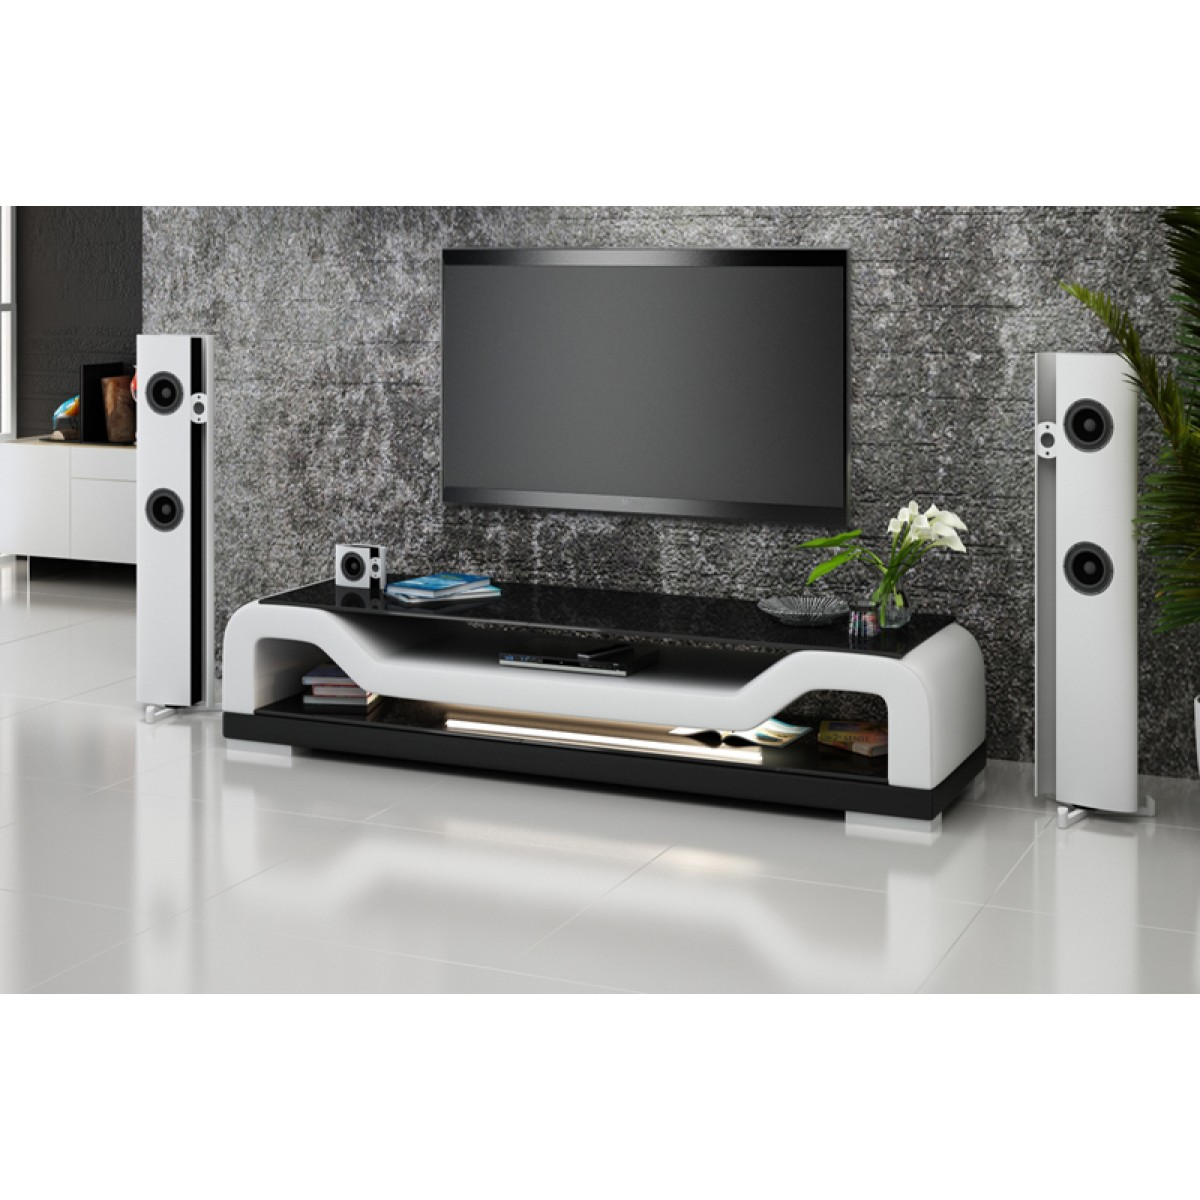 Meuble tv design personnalisable torino pop for Meuble de tele design